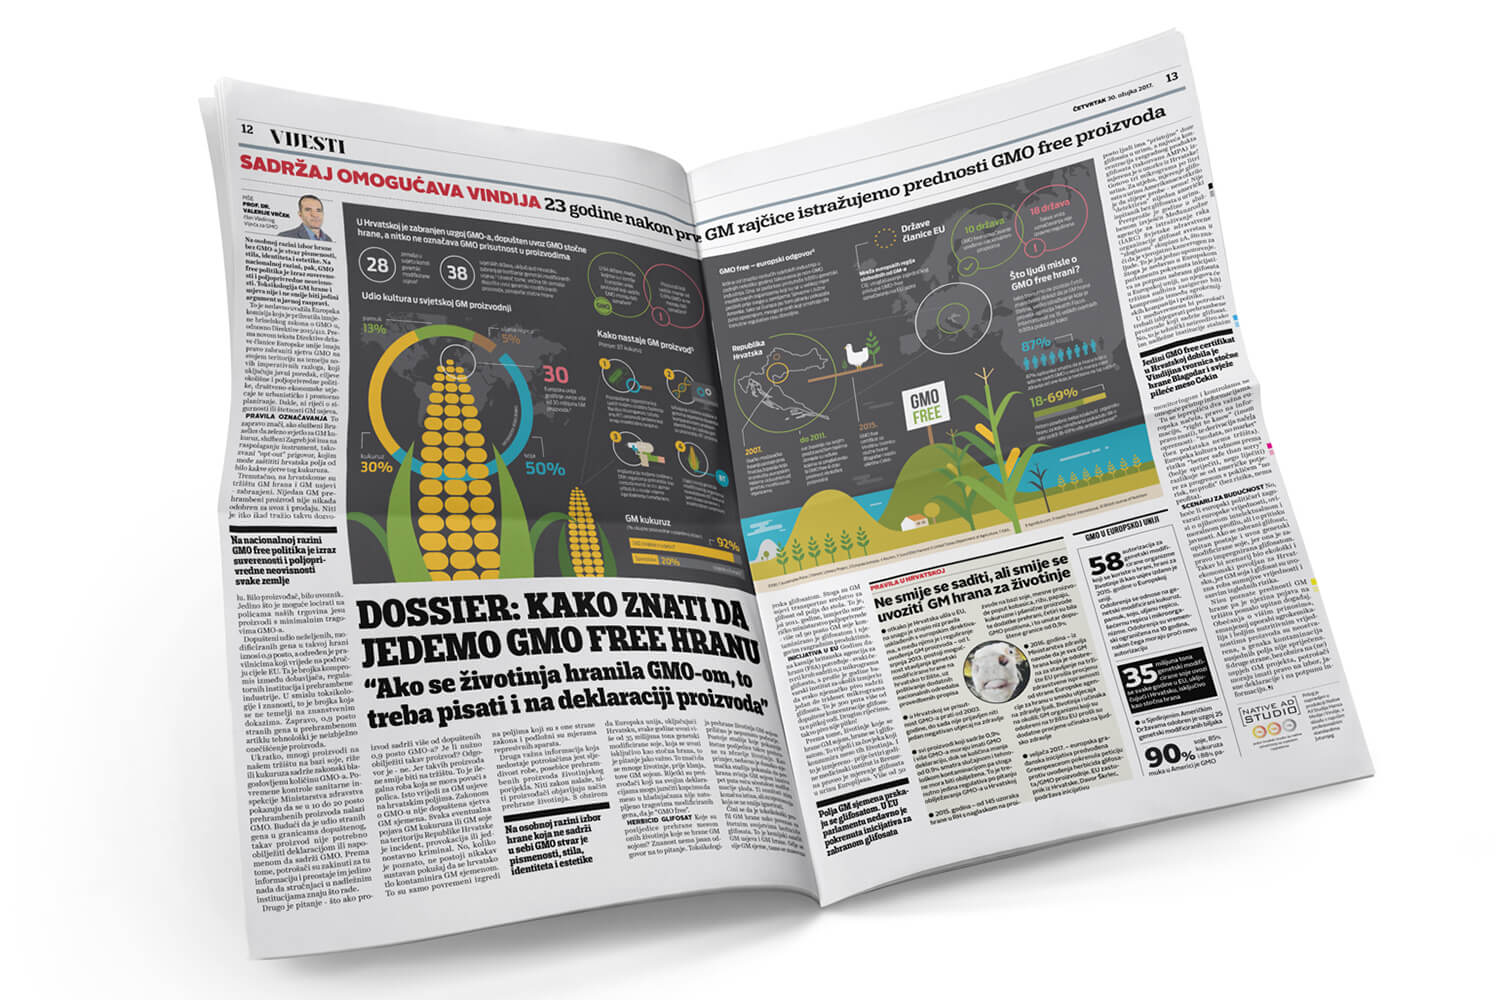 Dossier gmo free boris benko recently received a gmo free certificate for some of its products the project consisted of a large two page infographic published in newspaper print xflitez Image collections